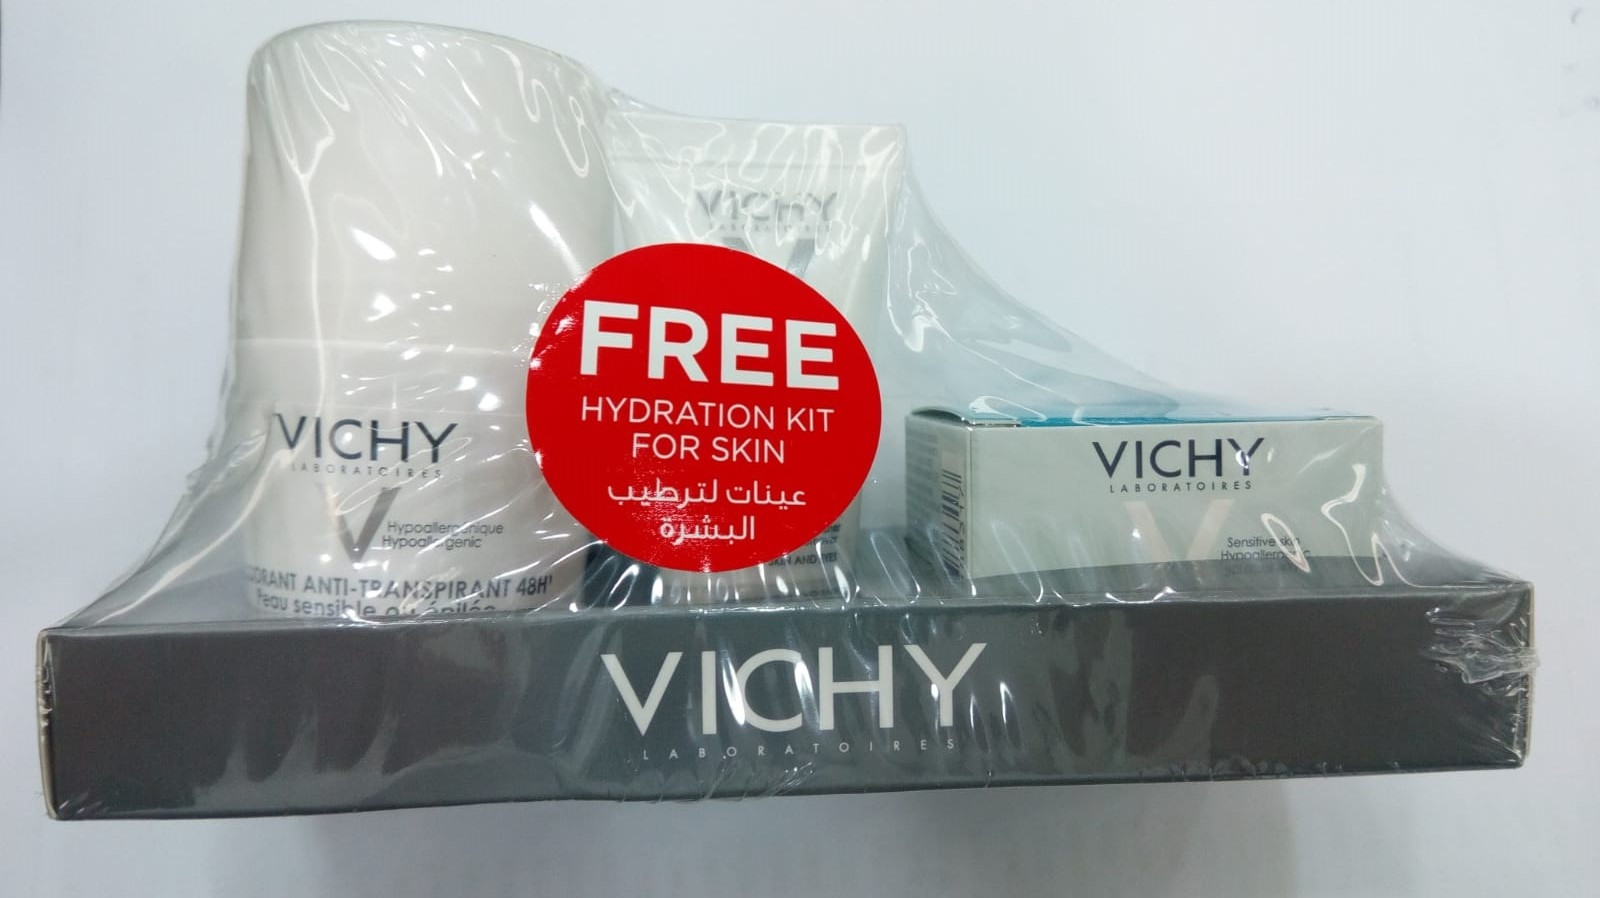 VICHY DEO PROMO HYDRATION KIT-OFFER